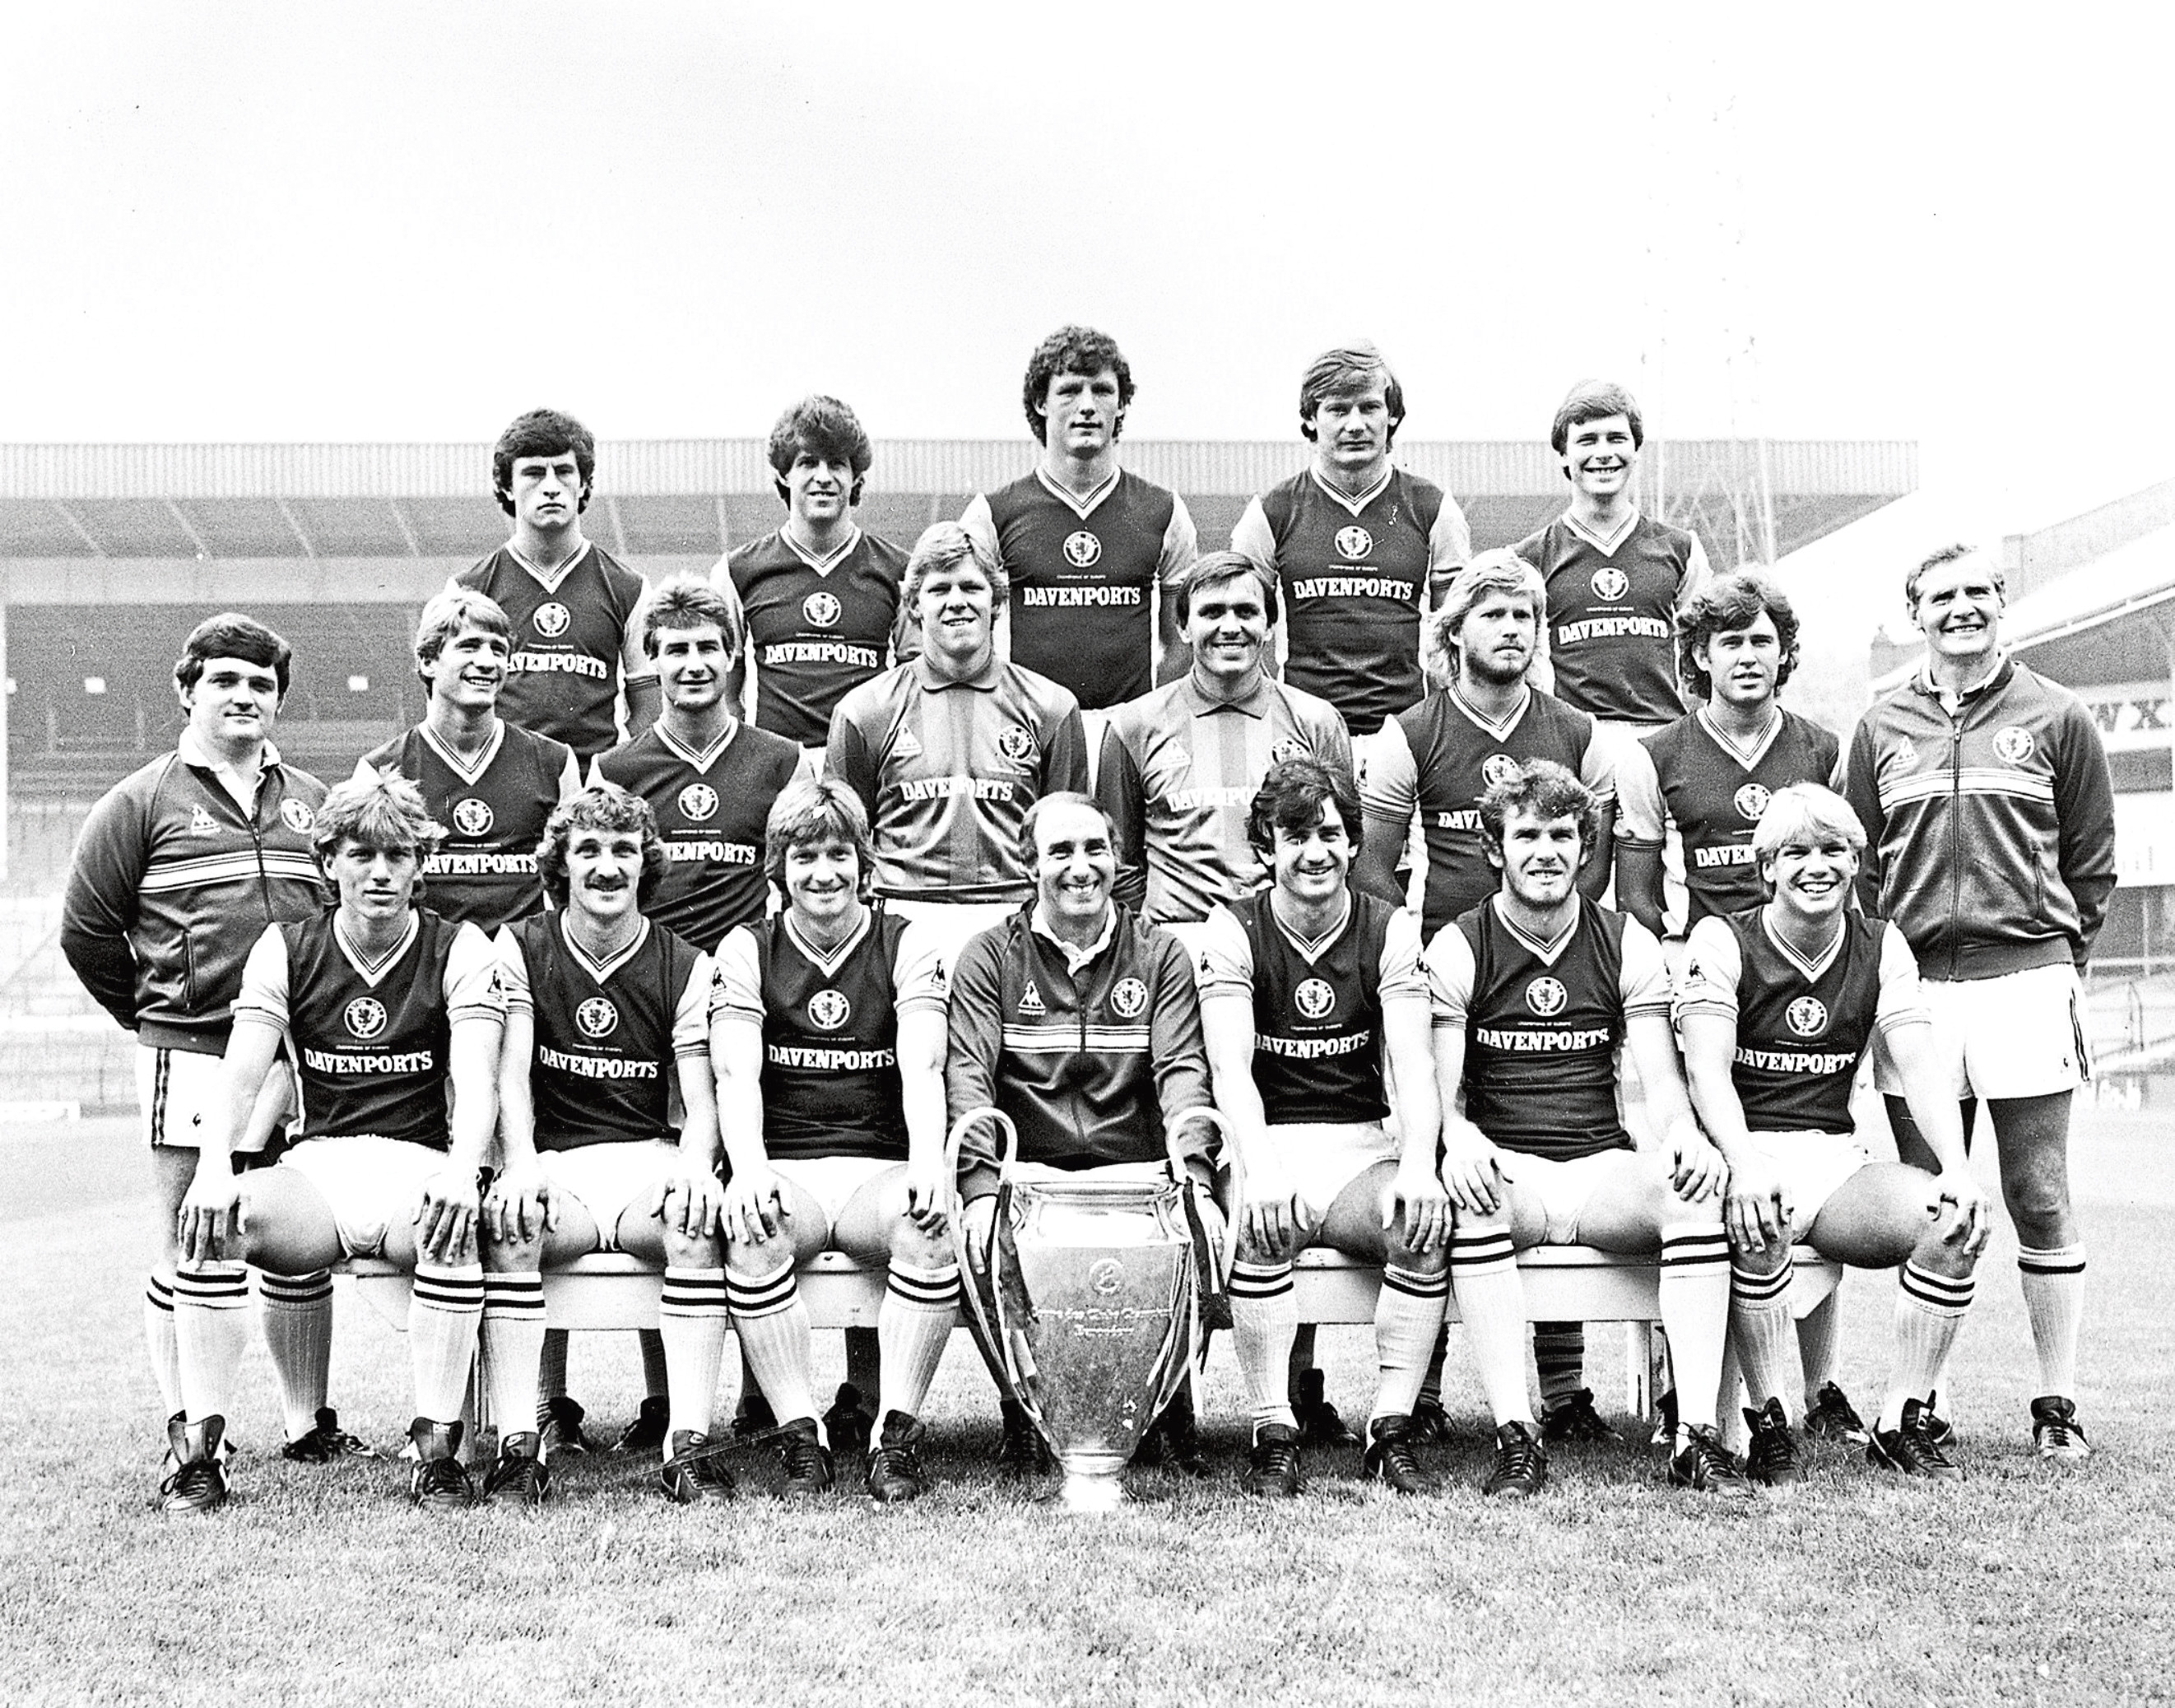 Aston Villa football club 1982 European Cup winning side Front Row l to r  Tony Morley , Des Bremner , Kenny Swain , Tony Barton ( manager ) Dennis Mortimer ( Captain ) Peter Withe , Gary Shaw  Middle Row Gordon Cowans , Andy Blair , Nigel Spink , Jimmy Rimmer , David Geddis , Gary Williams Back Row Terry Bullivant ,Colin Gibson , Allan Evans , Ken McNaught , unknown